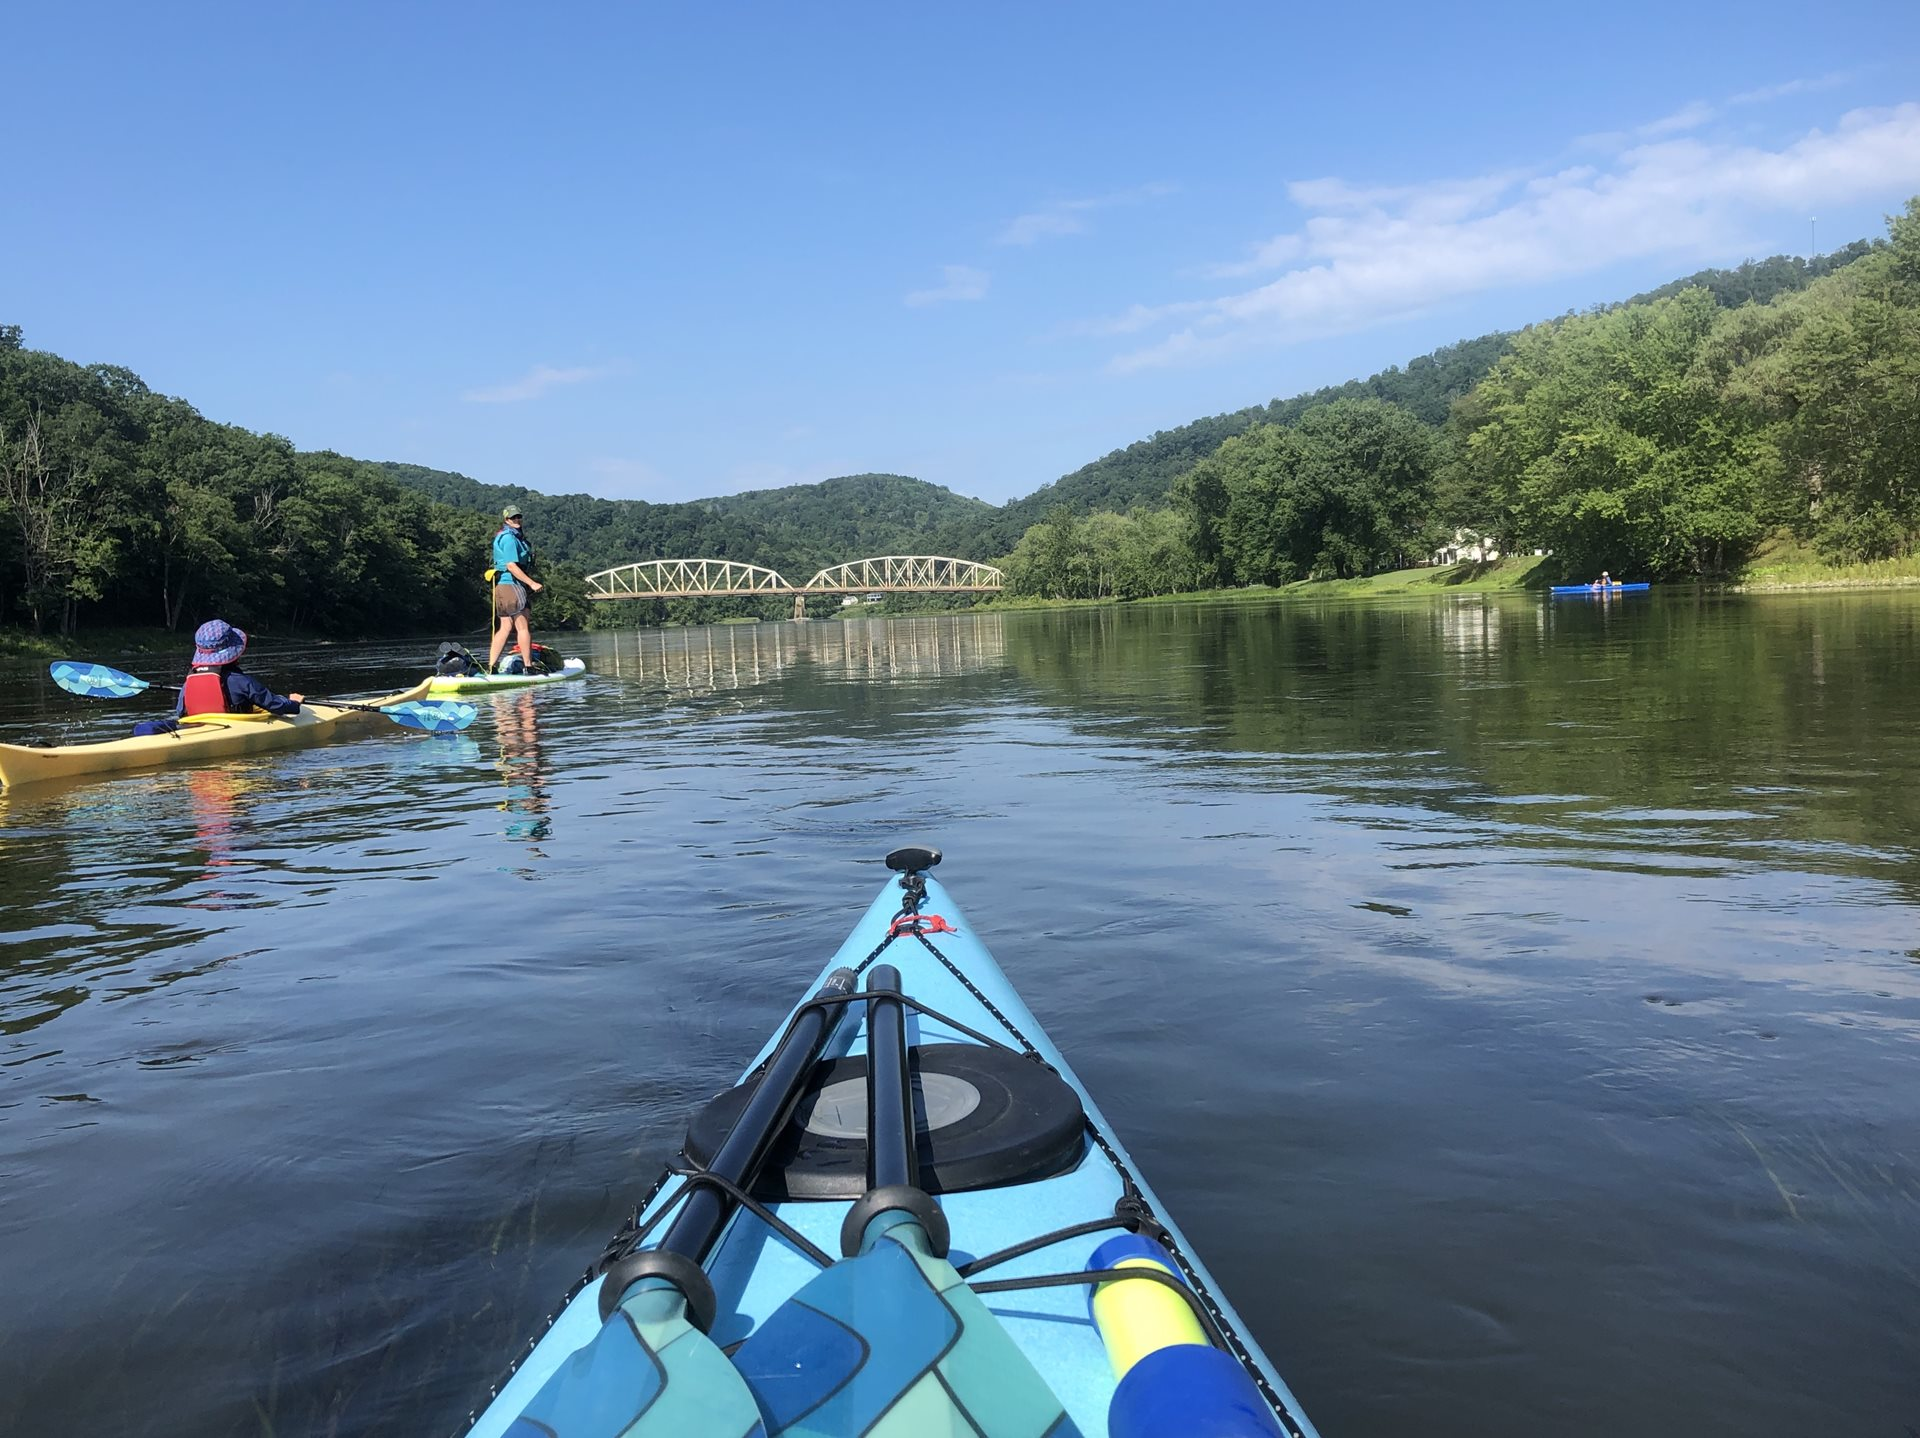 Skills and Thrills - Paddling the Allegheny River & Lake Erie Water Trail